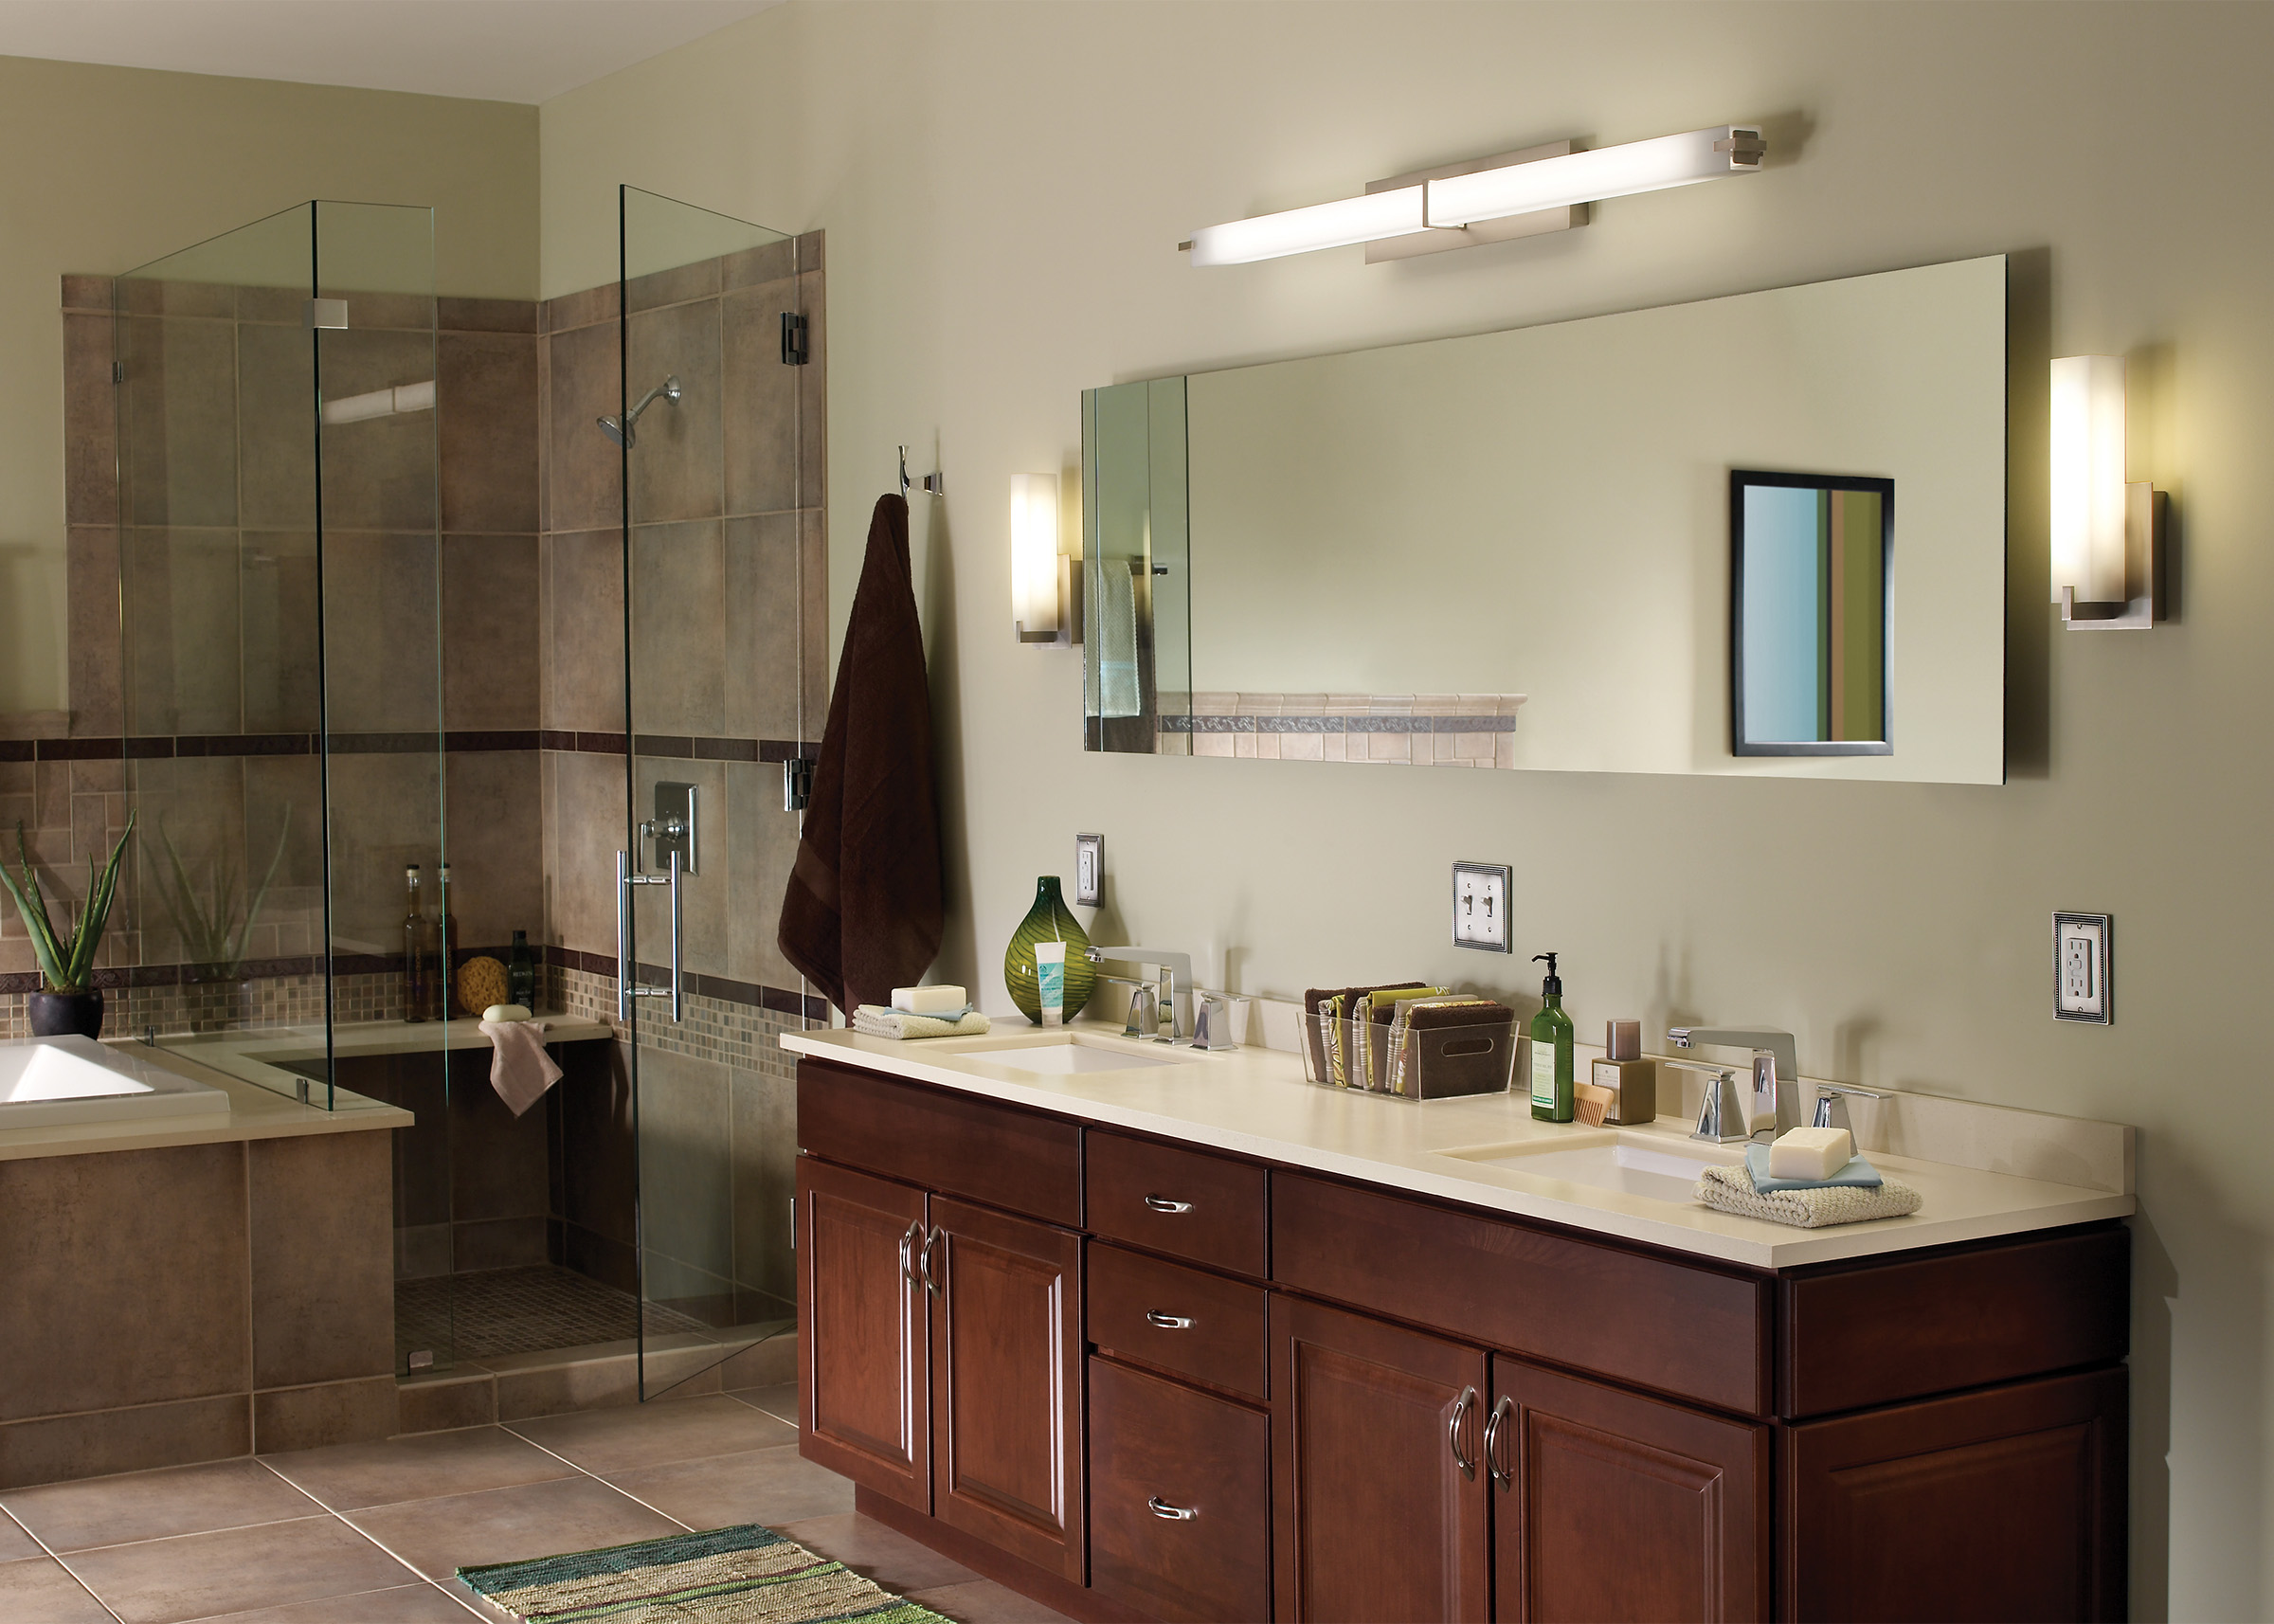 Do I Need Damp Rated Lights For My Bathroom Flip The Switch - Modern bathroom lights over mirror